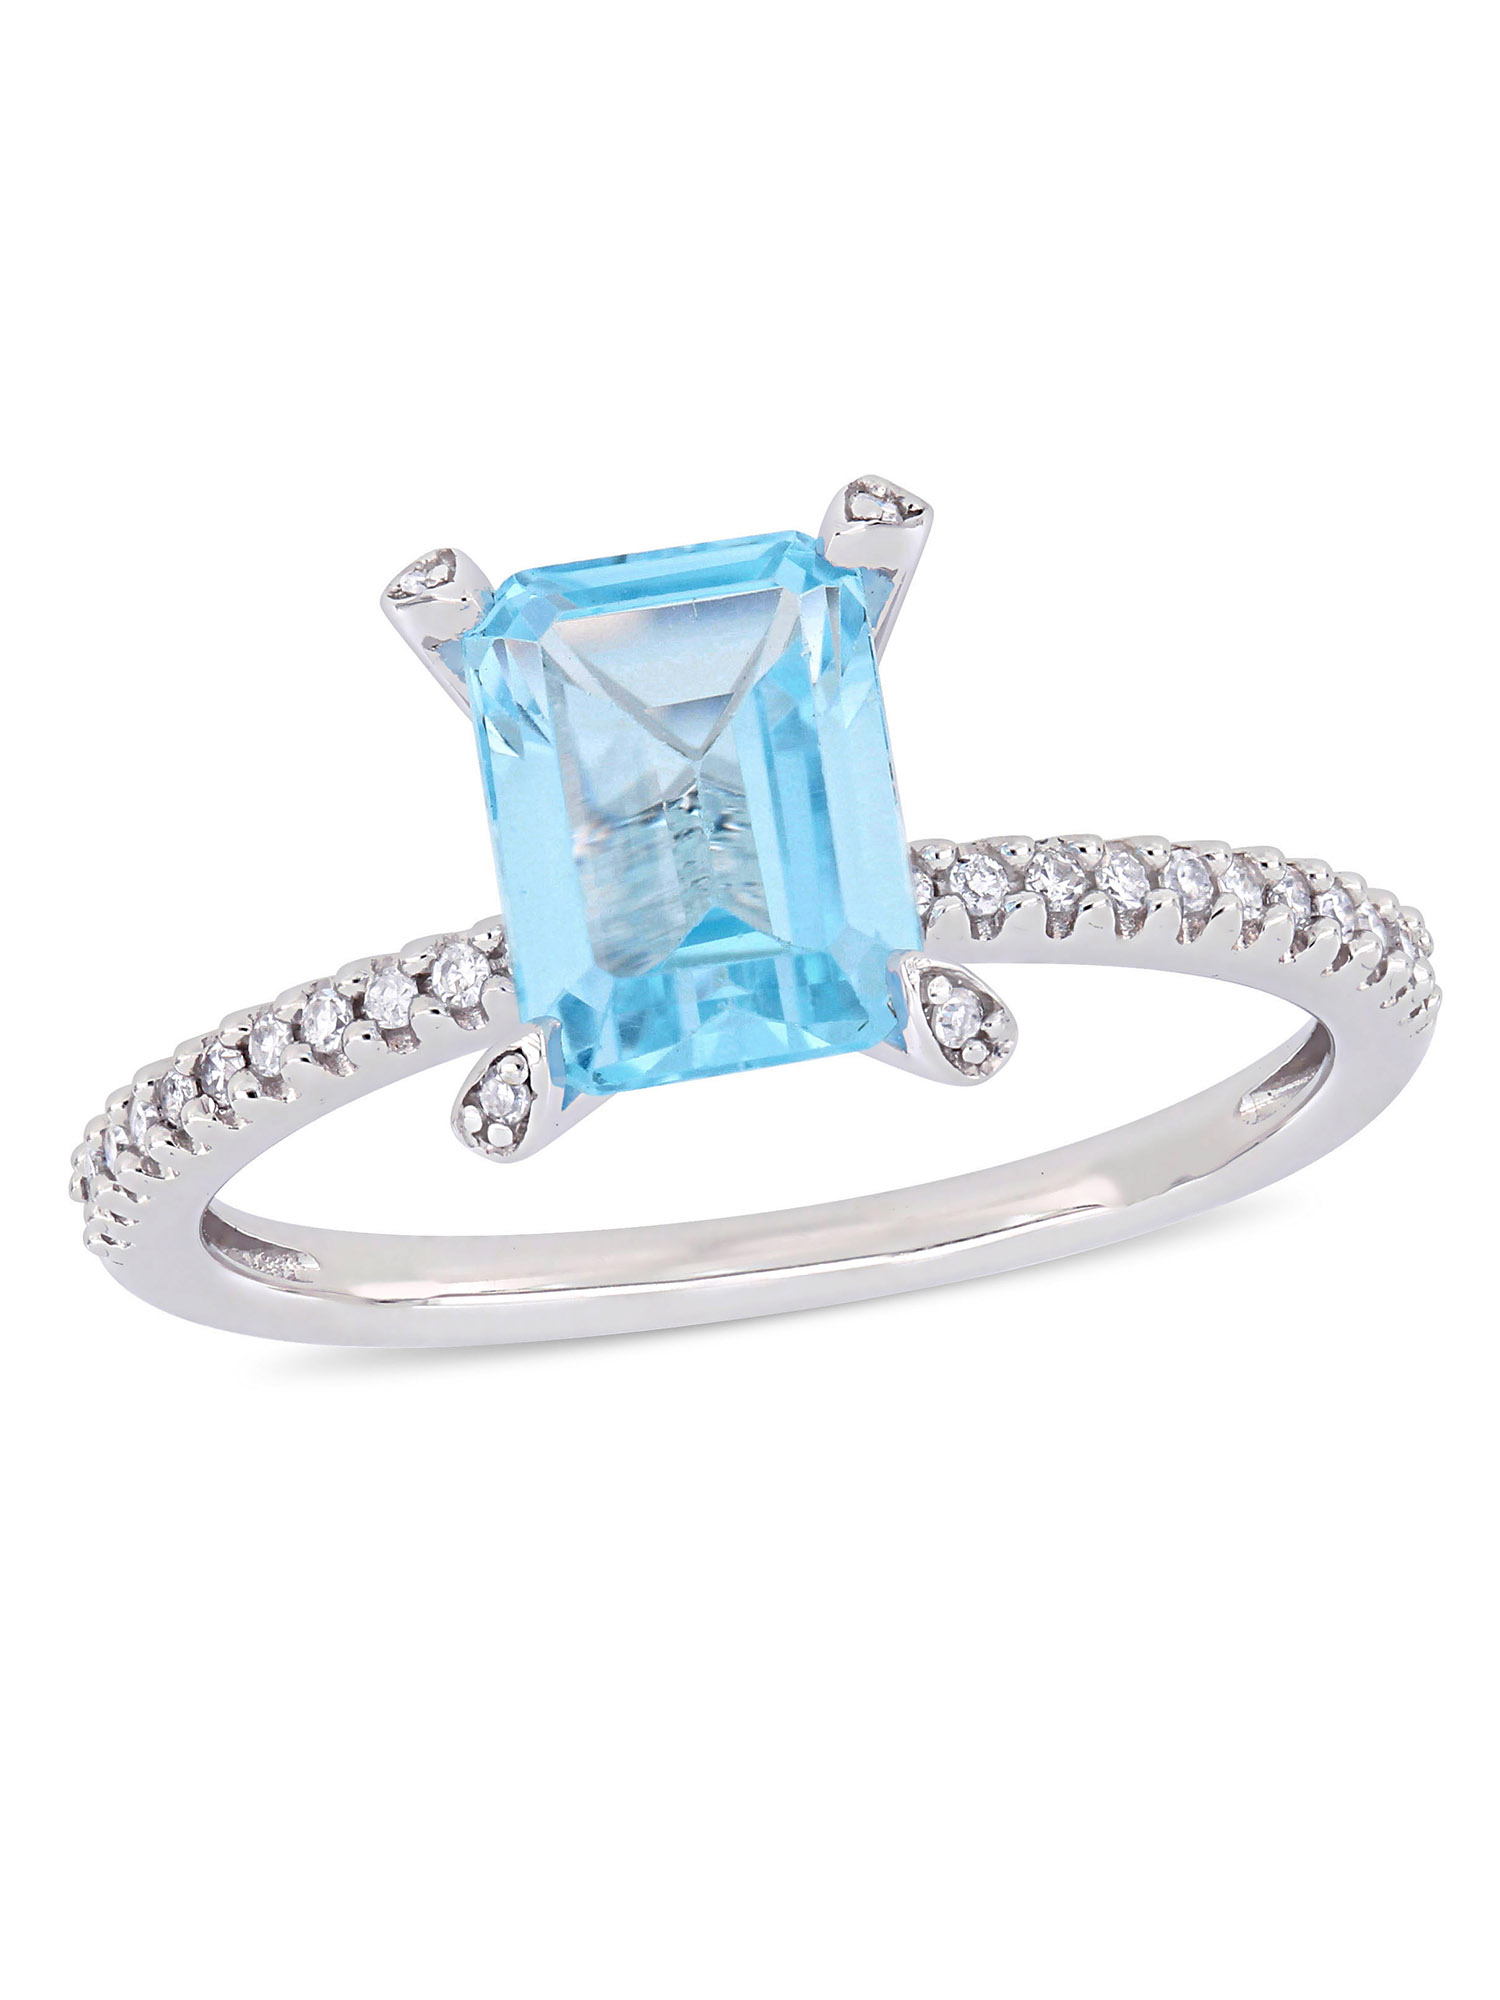 Tangelo 2 Carat T.G.W. Sky-Blue Topaz and 1/10 Carat T.W. Diamond 10kt White Gold Engagement Ring